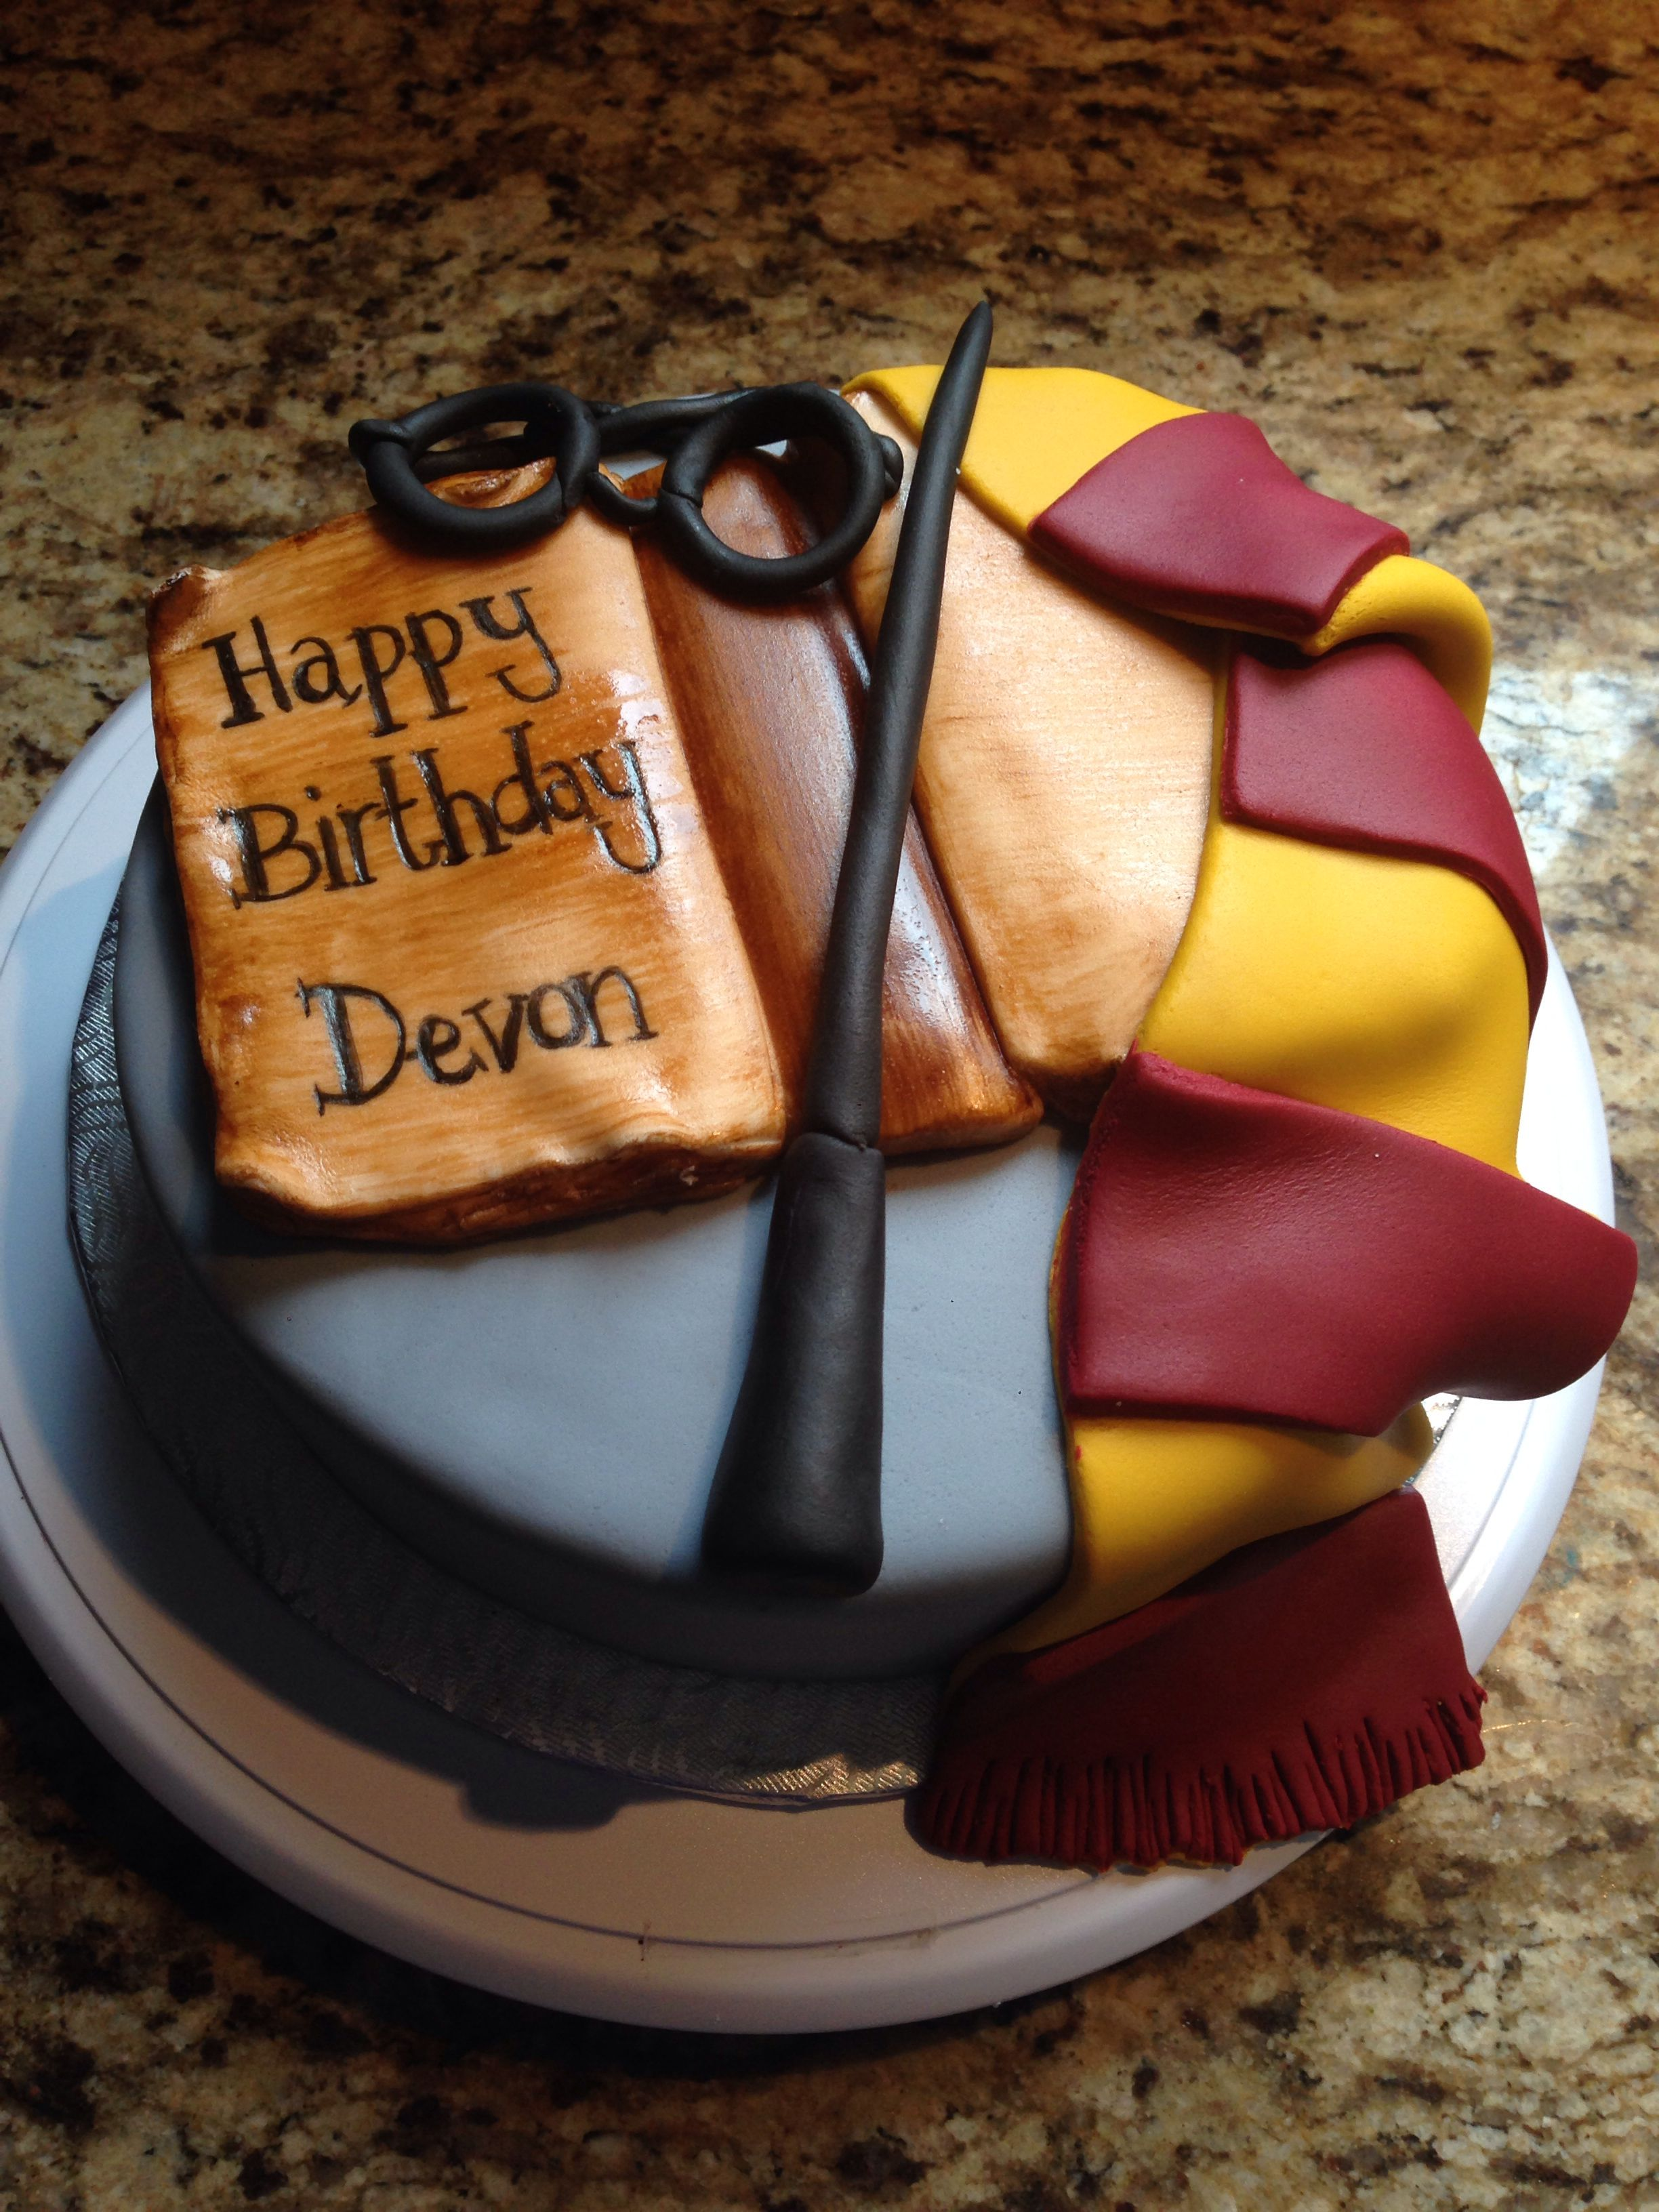 Pin By Vanessa On My Cakes Harry Potter Birthday Cake Harry Potter Birthday Harry Potter Cake